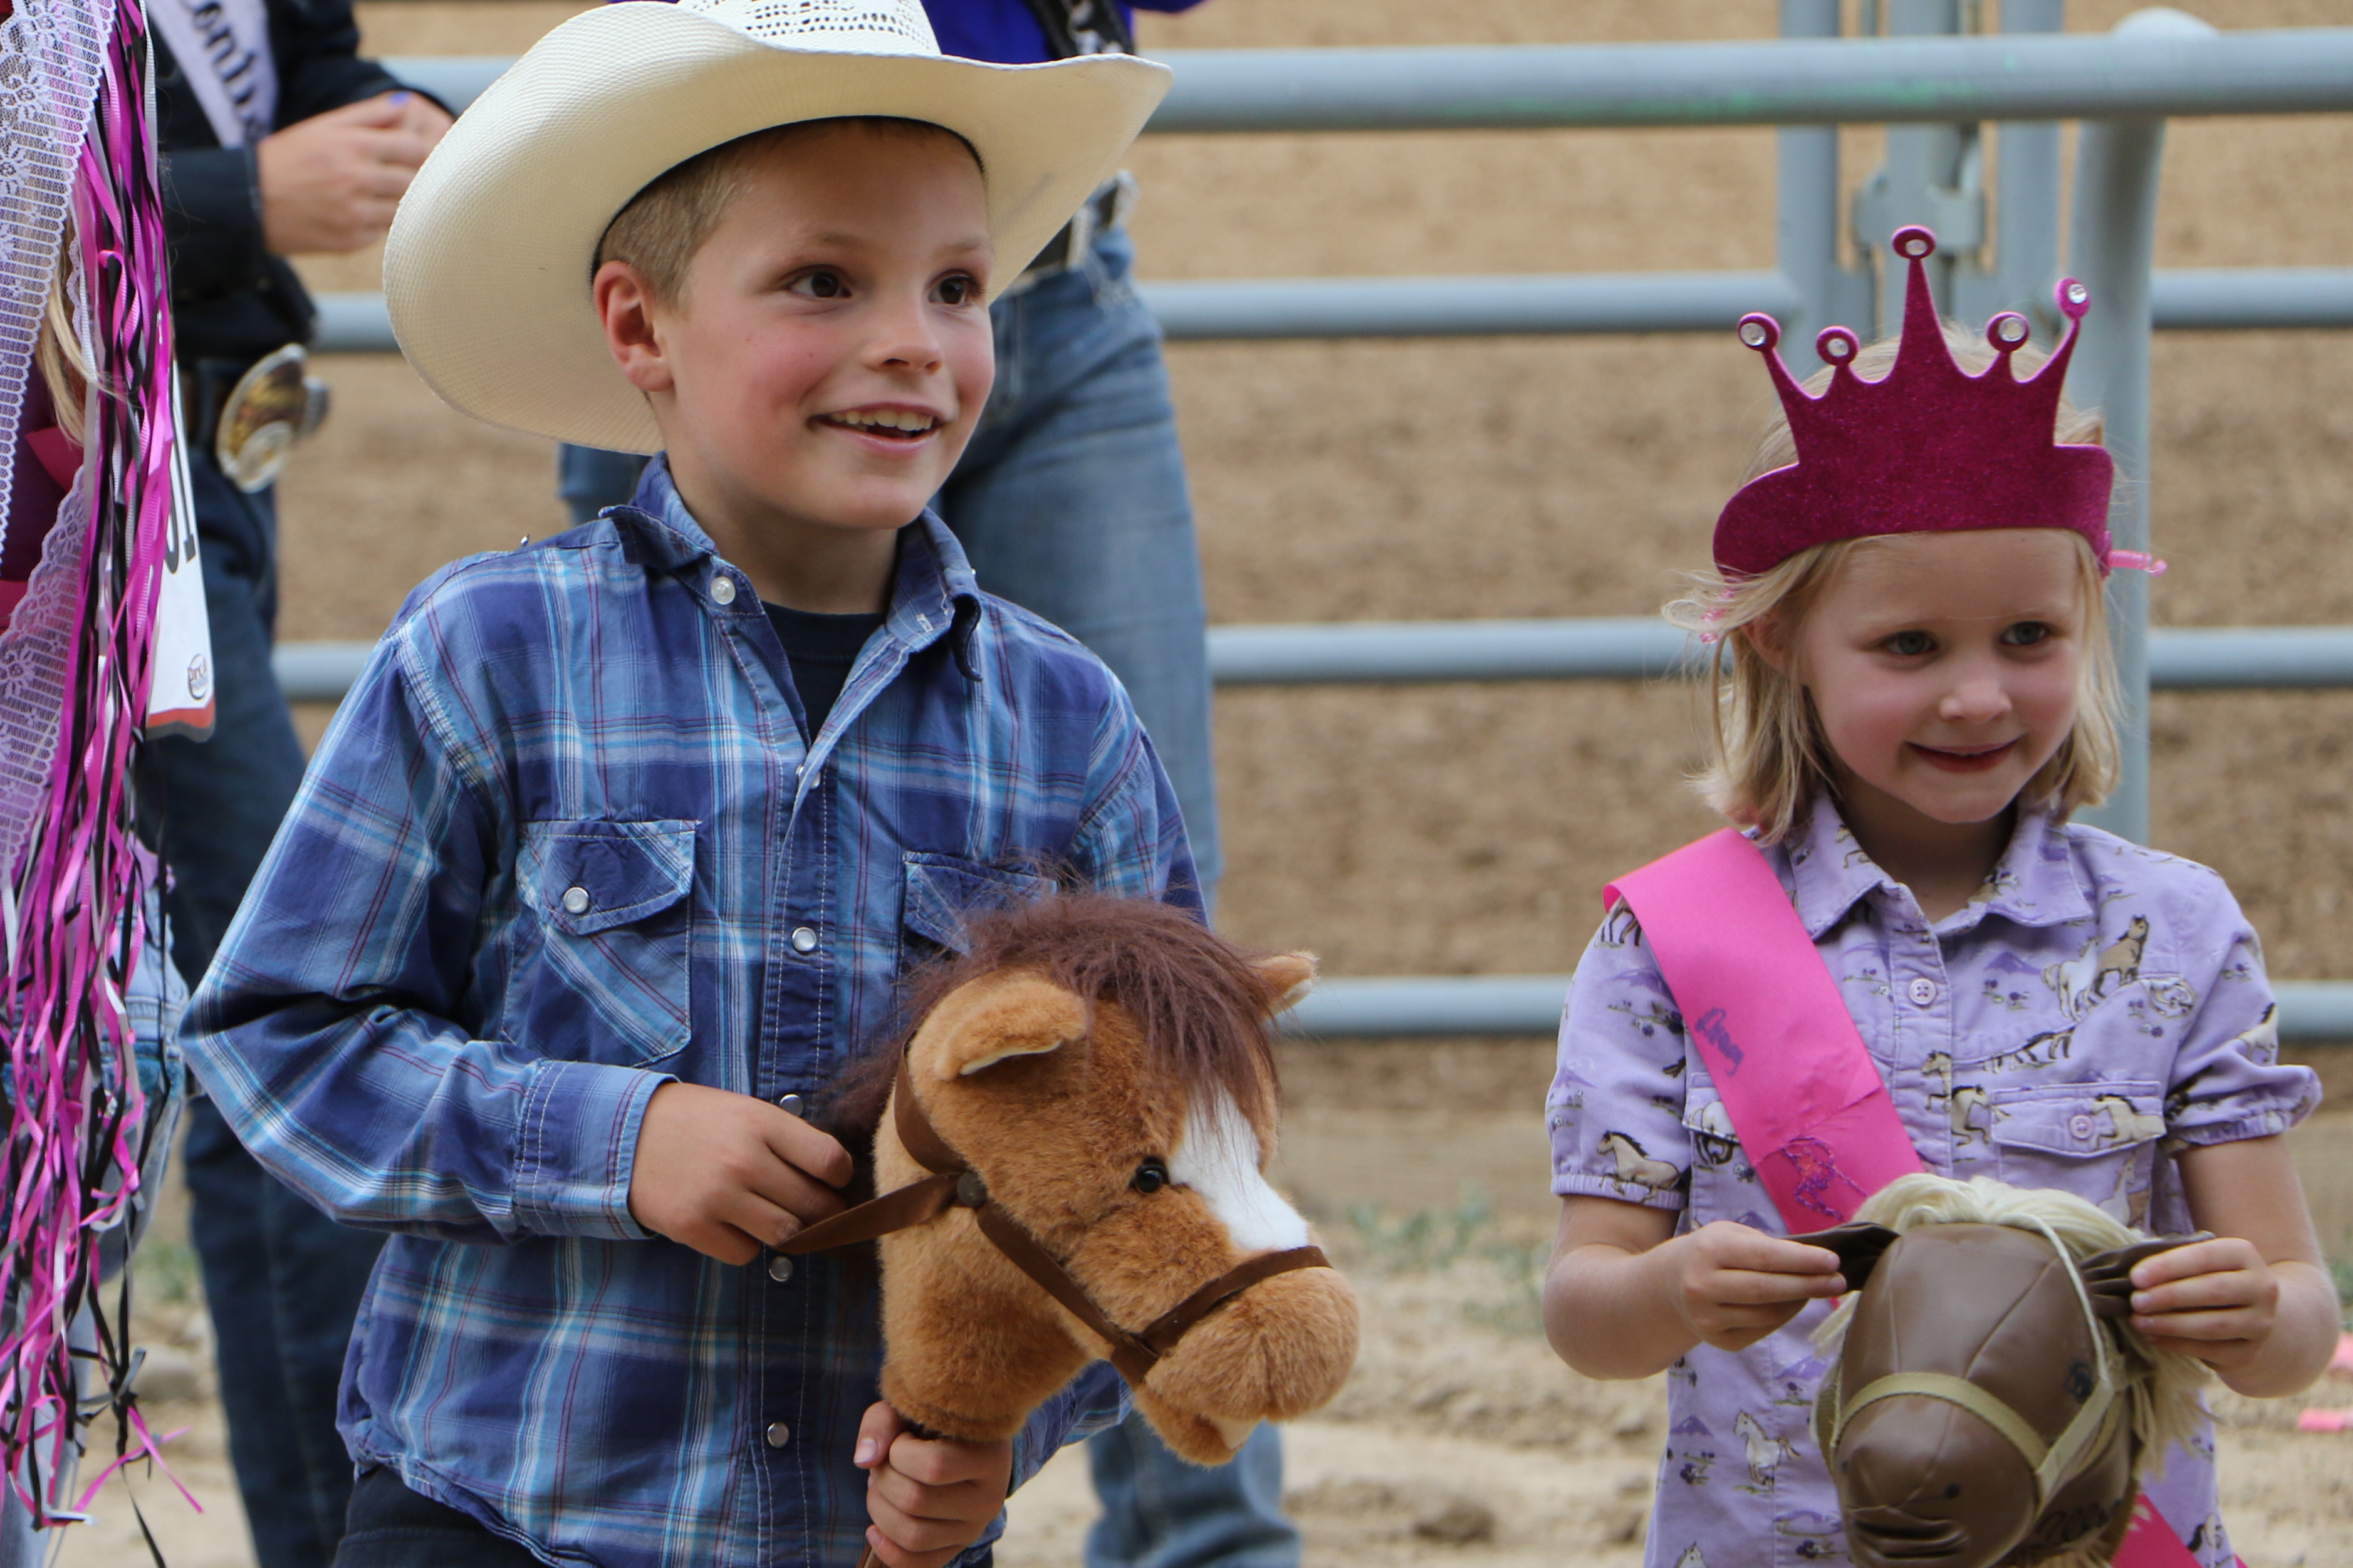 Lil' Buckaroo and Princess for a Day